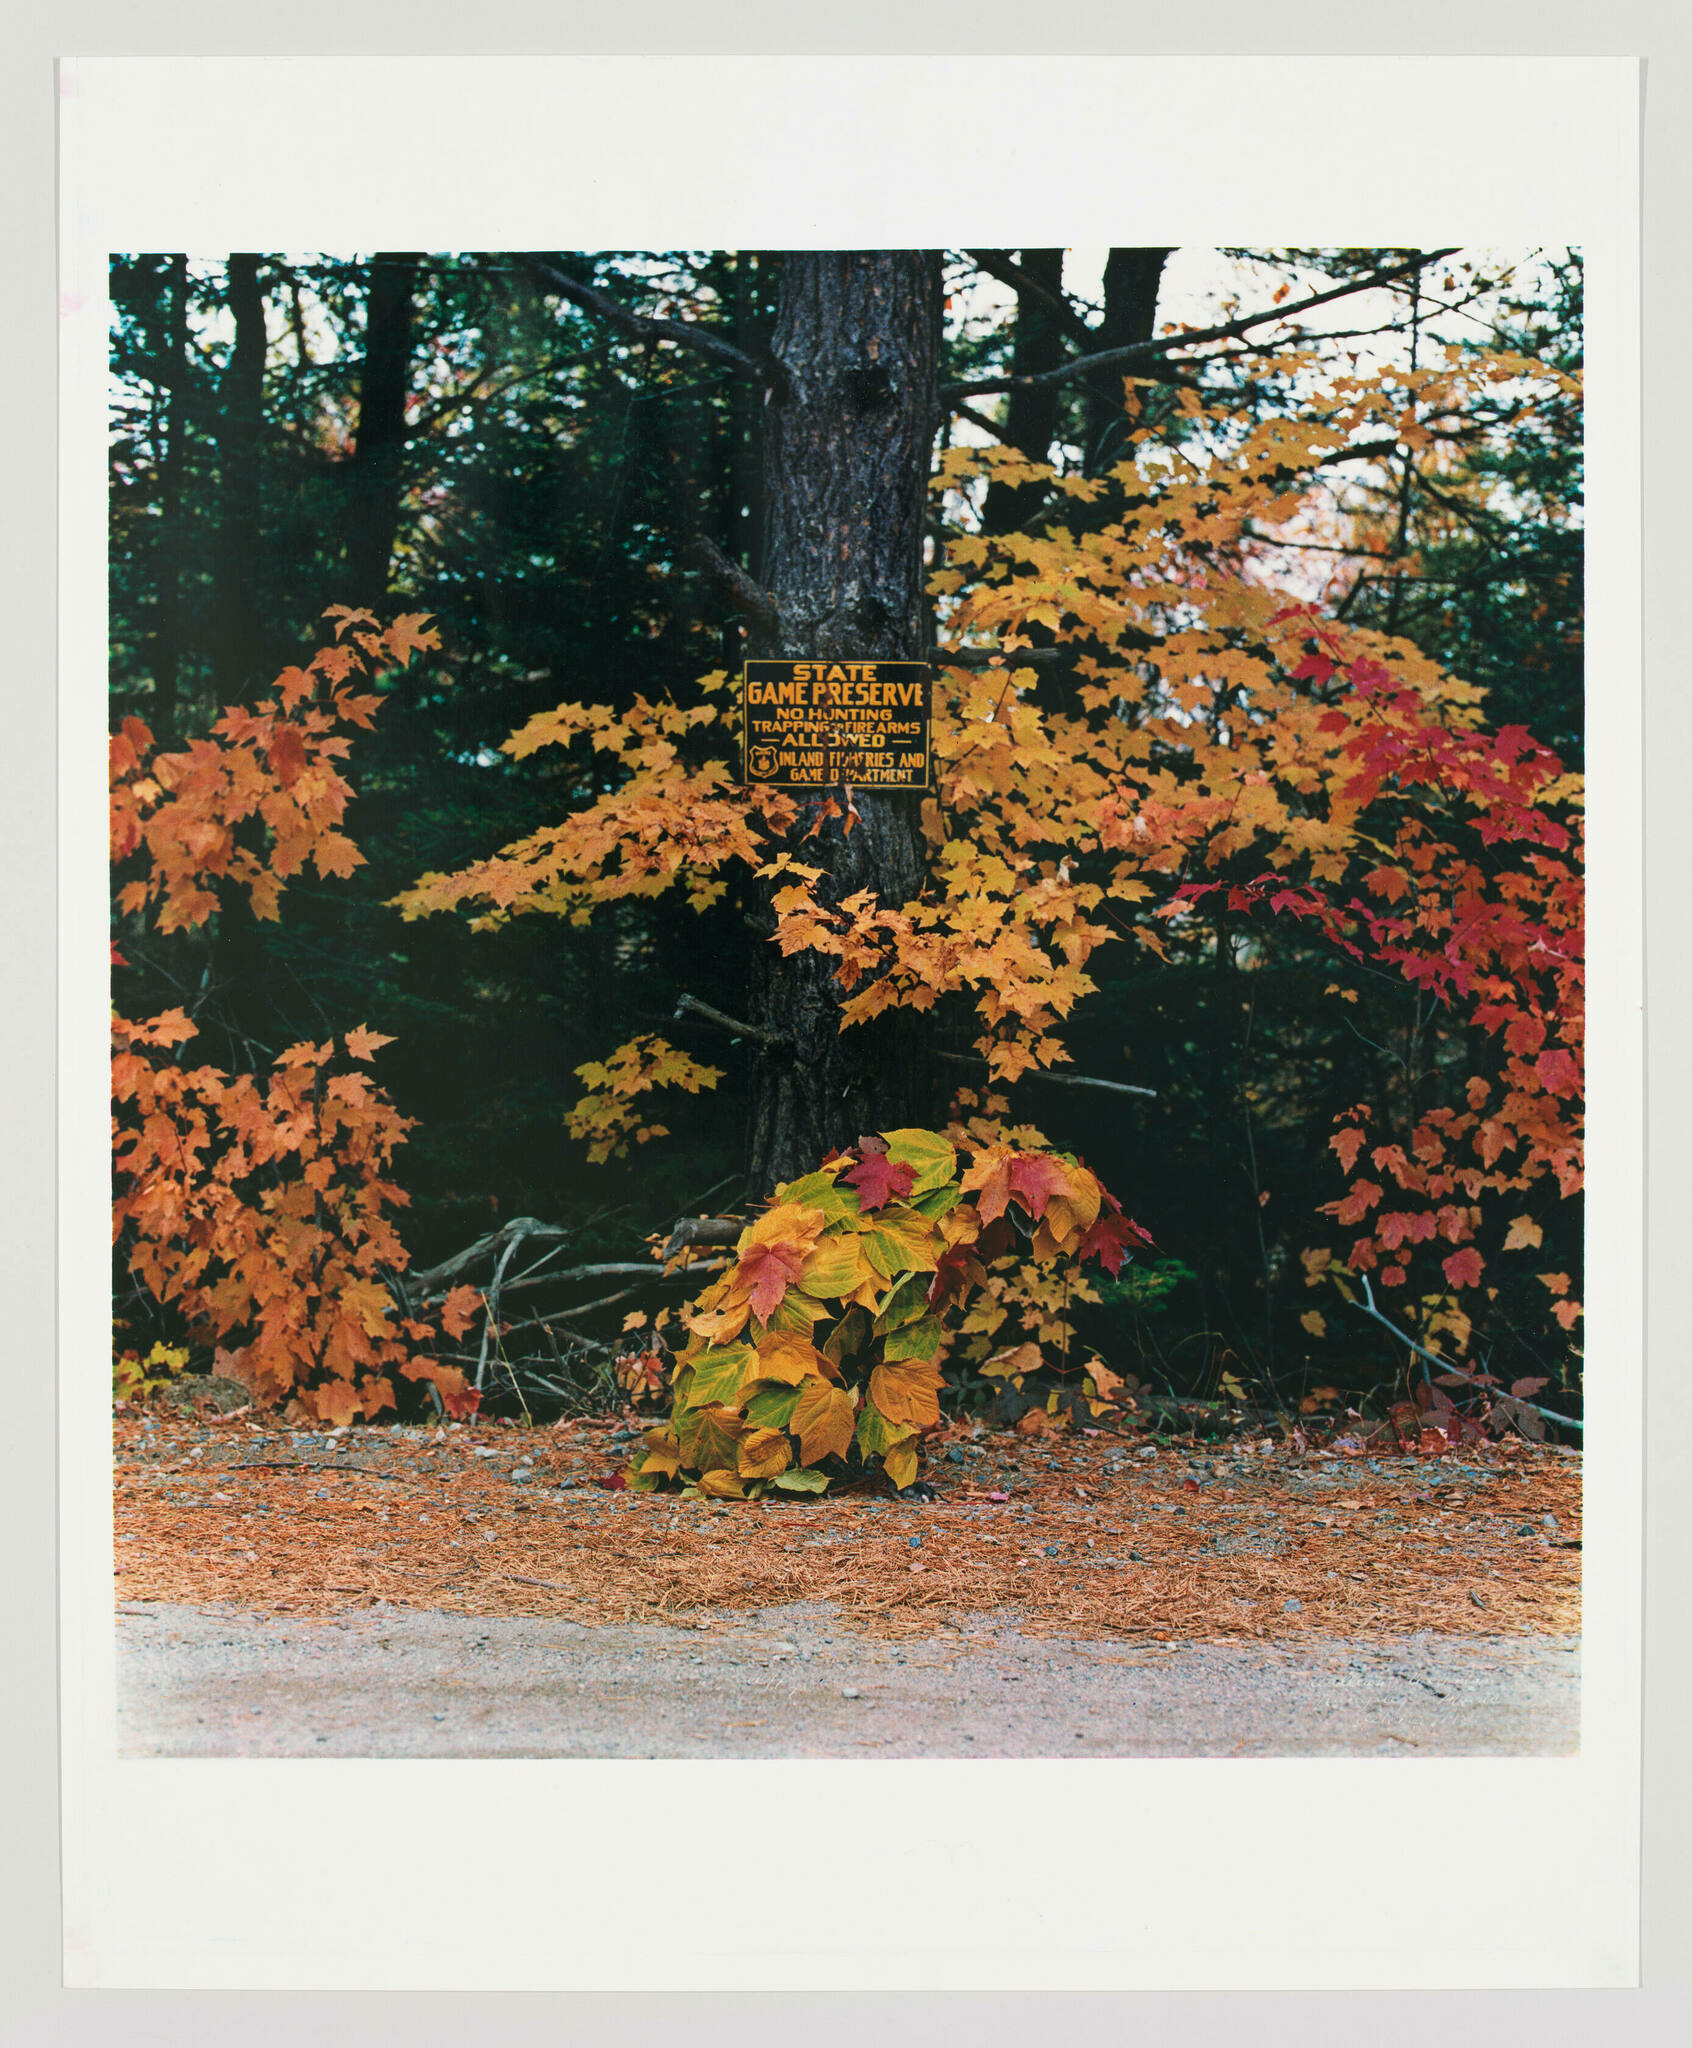 A peculiar mound of red, orange, yellow, and green leaves sits at the side of the road beside woods full of leaves of the same colors.